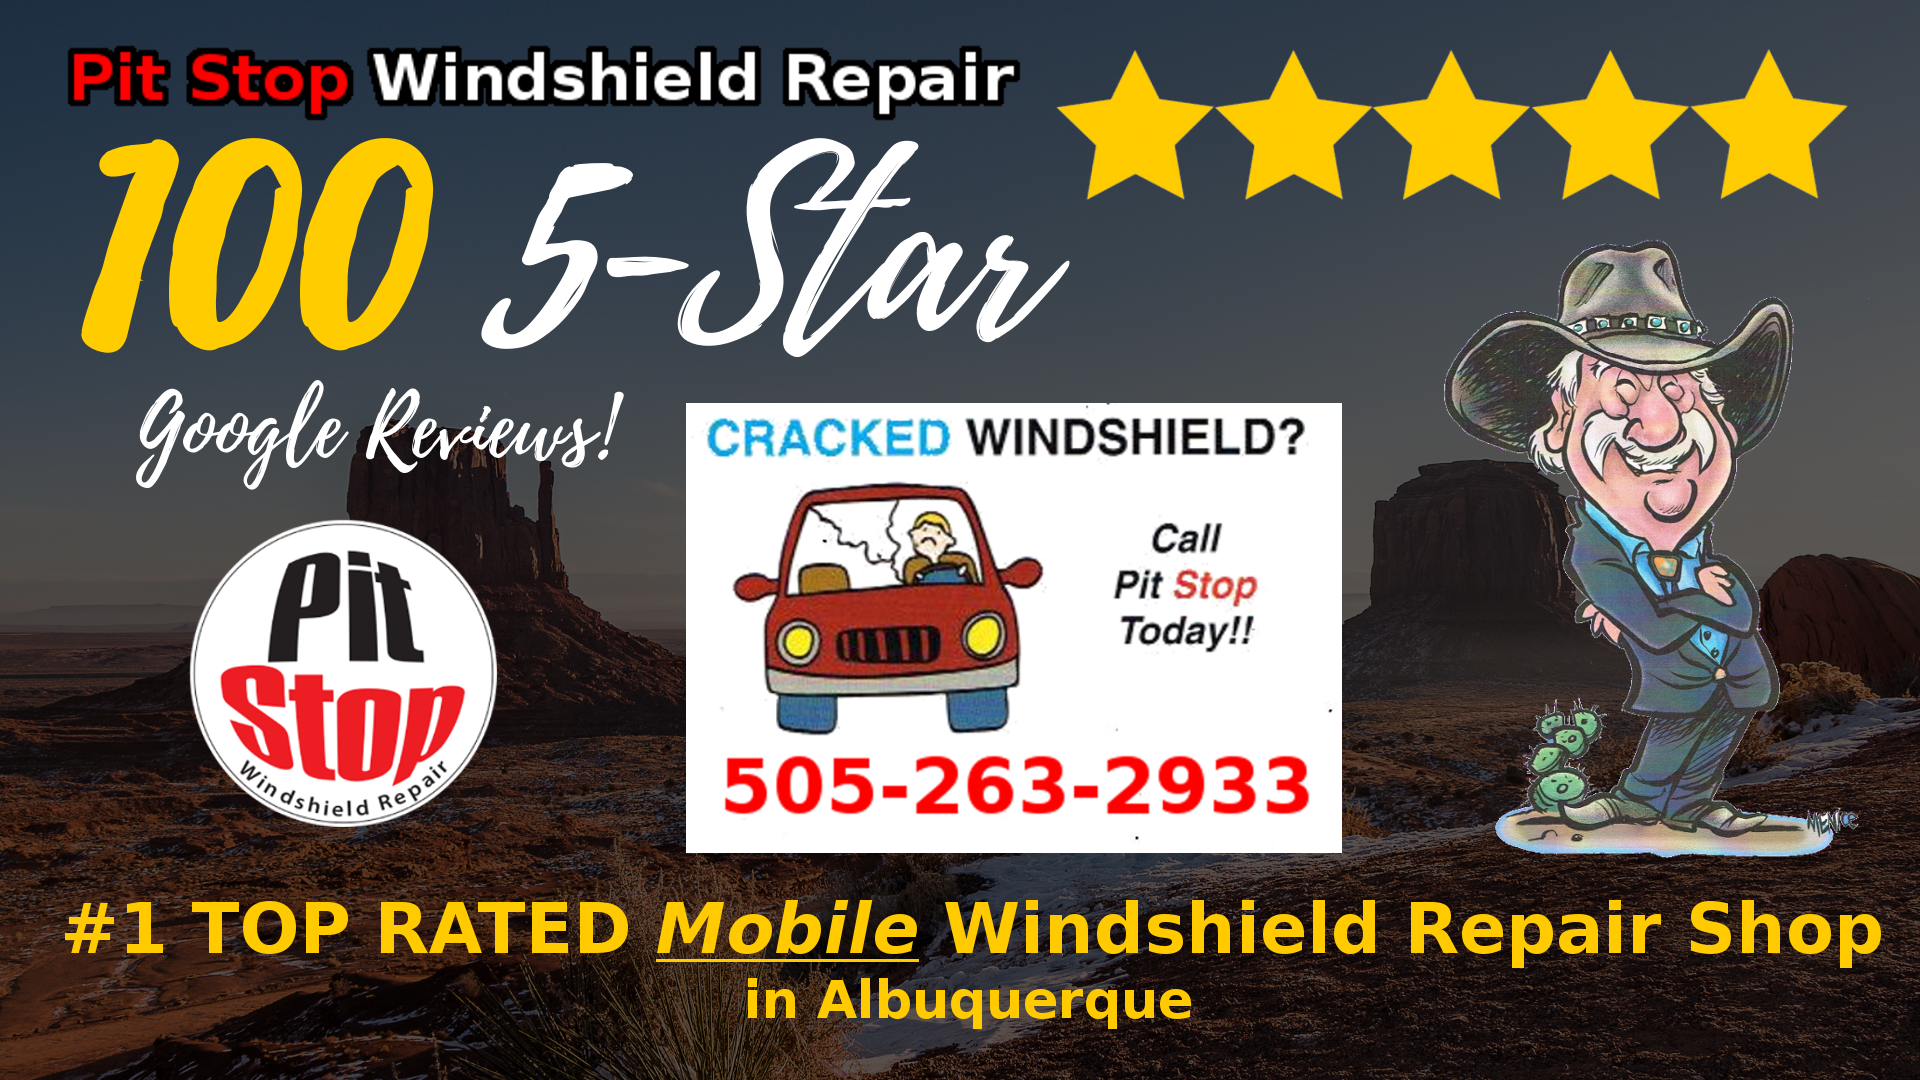 Pit Stop Reaches 100 5-STAR Reviews: #1 TOP RATED Windshield